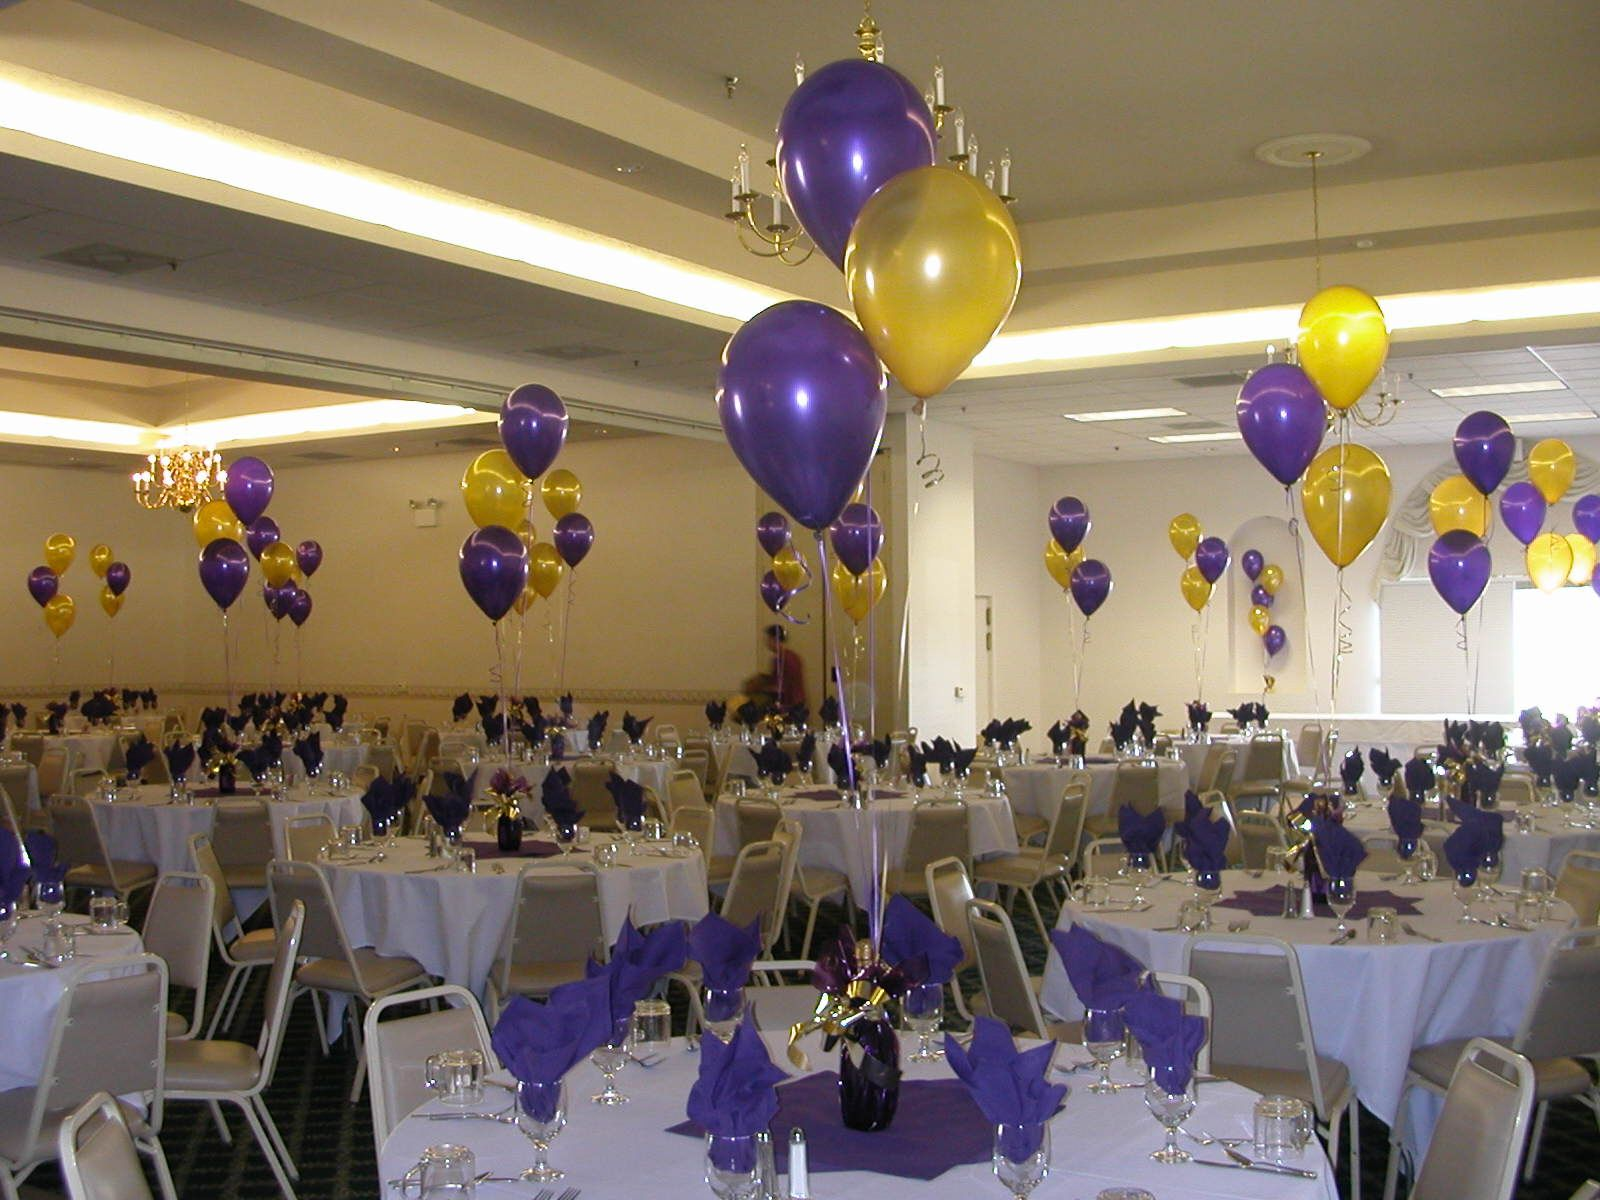 Graduation Party Decorating Ideas graduation centerpiece ideas | balloon decor of central california